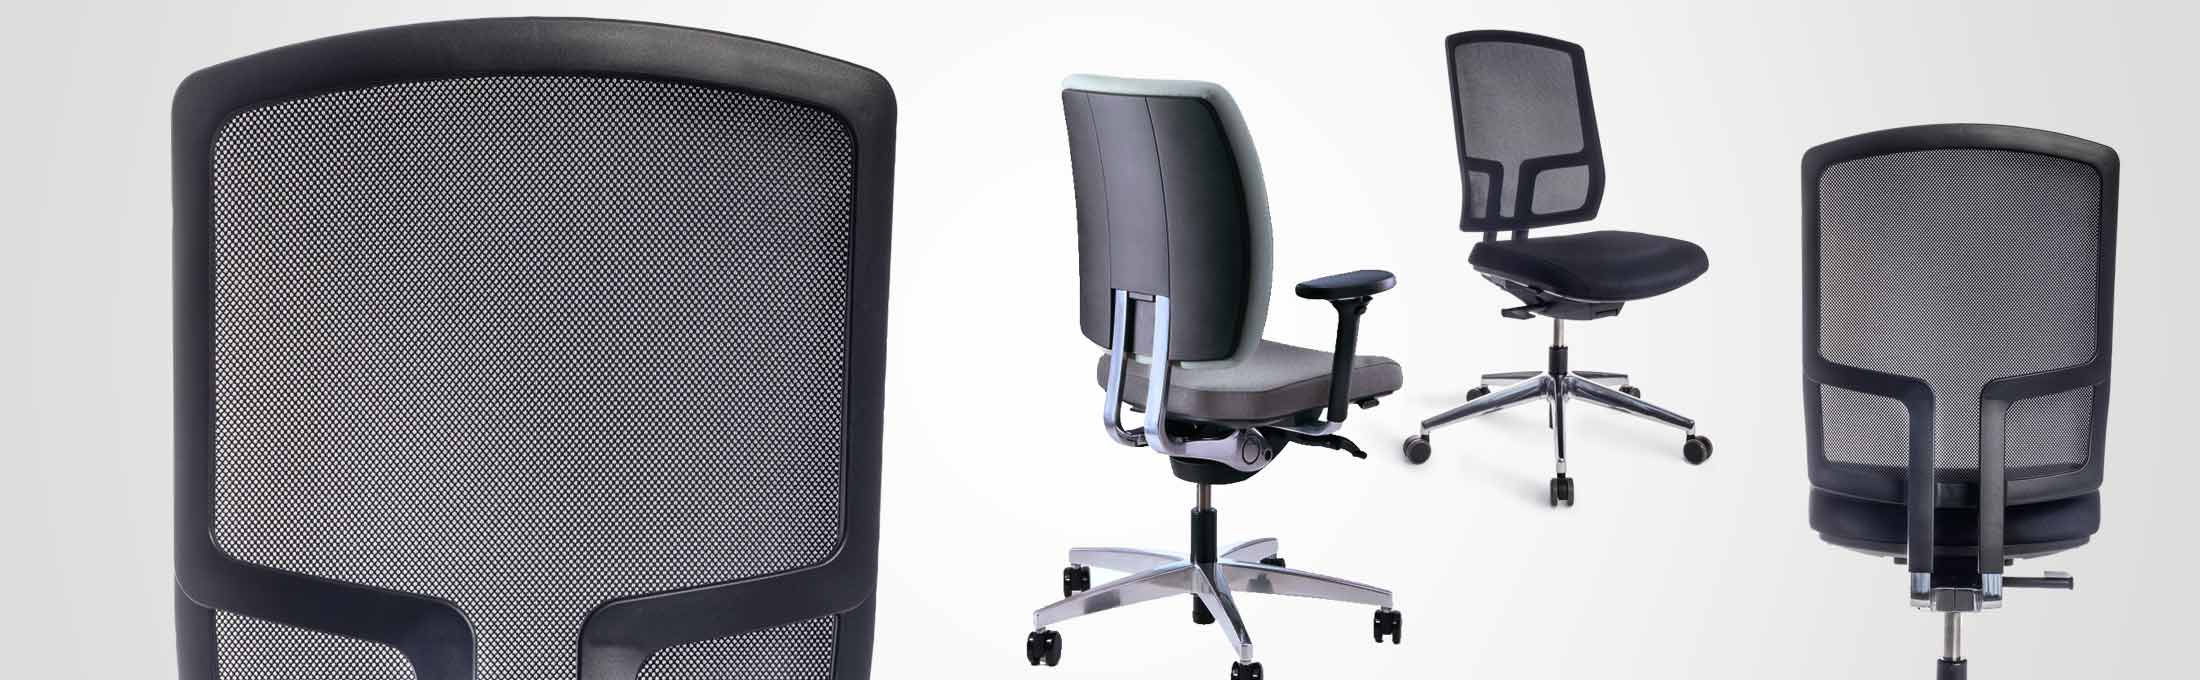 Office Chair Concepts Bock Inspired By Smart Concepts